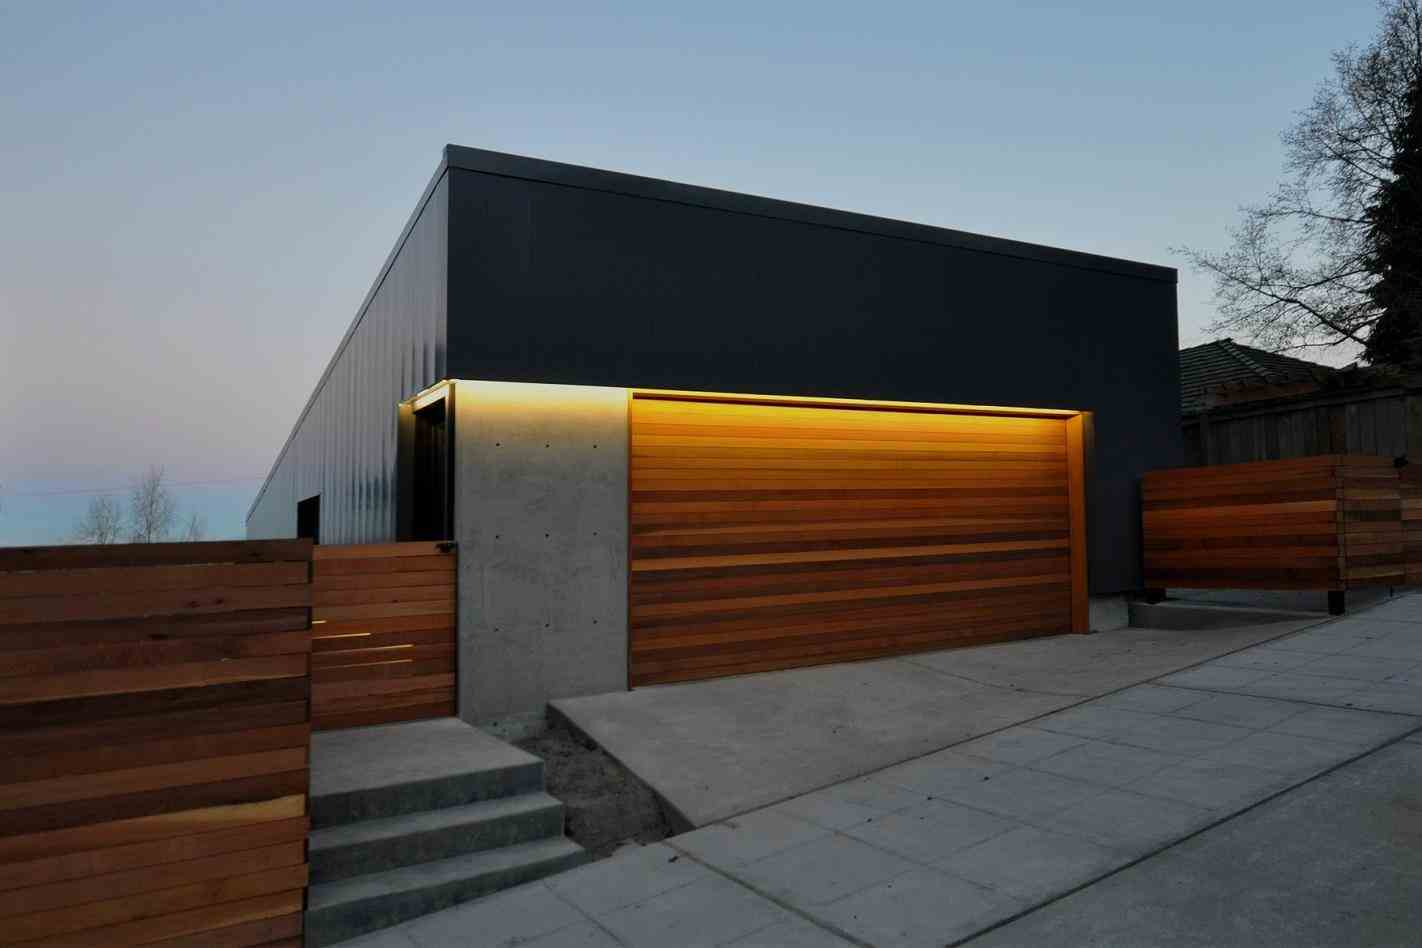 Garage modern wood fence garage contemporary wood doors traditional wooden modern fence home u gardens geek modern modern wood fence garage